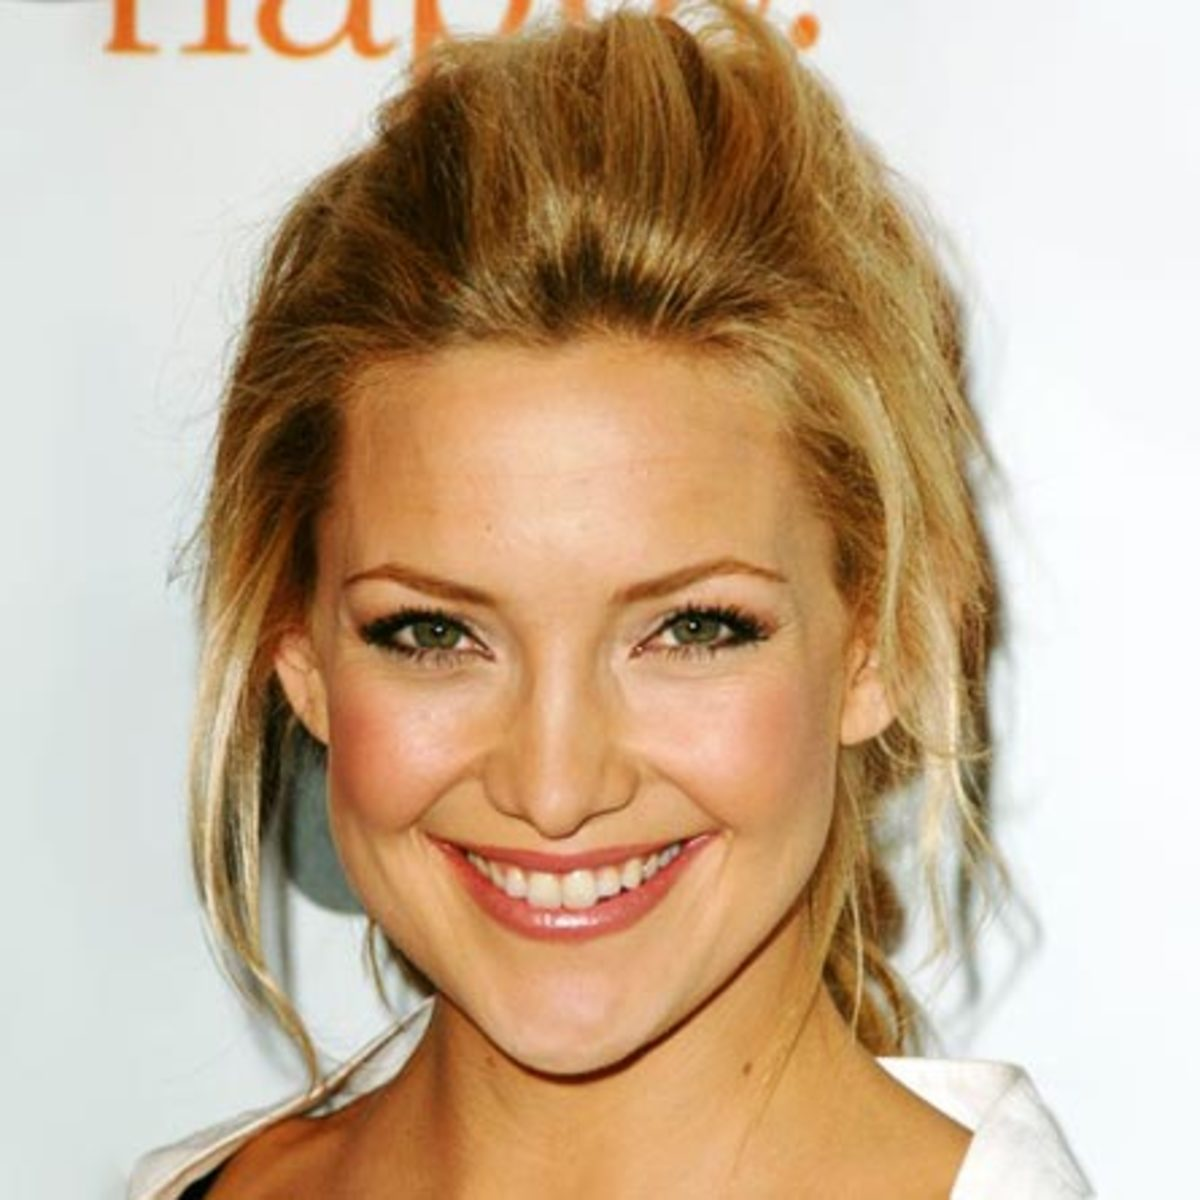 Kate Hudson's eyebrows have a very straight arch to them which emphasizes and opens up her smaller eyes.